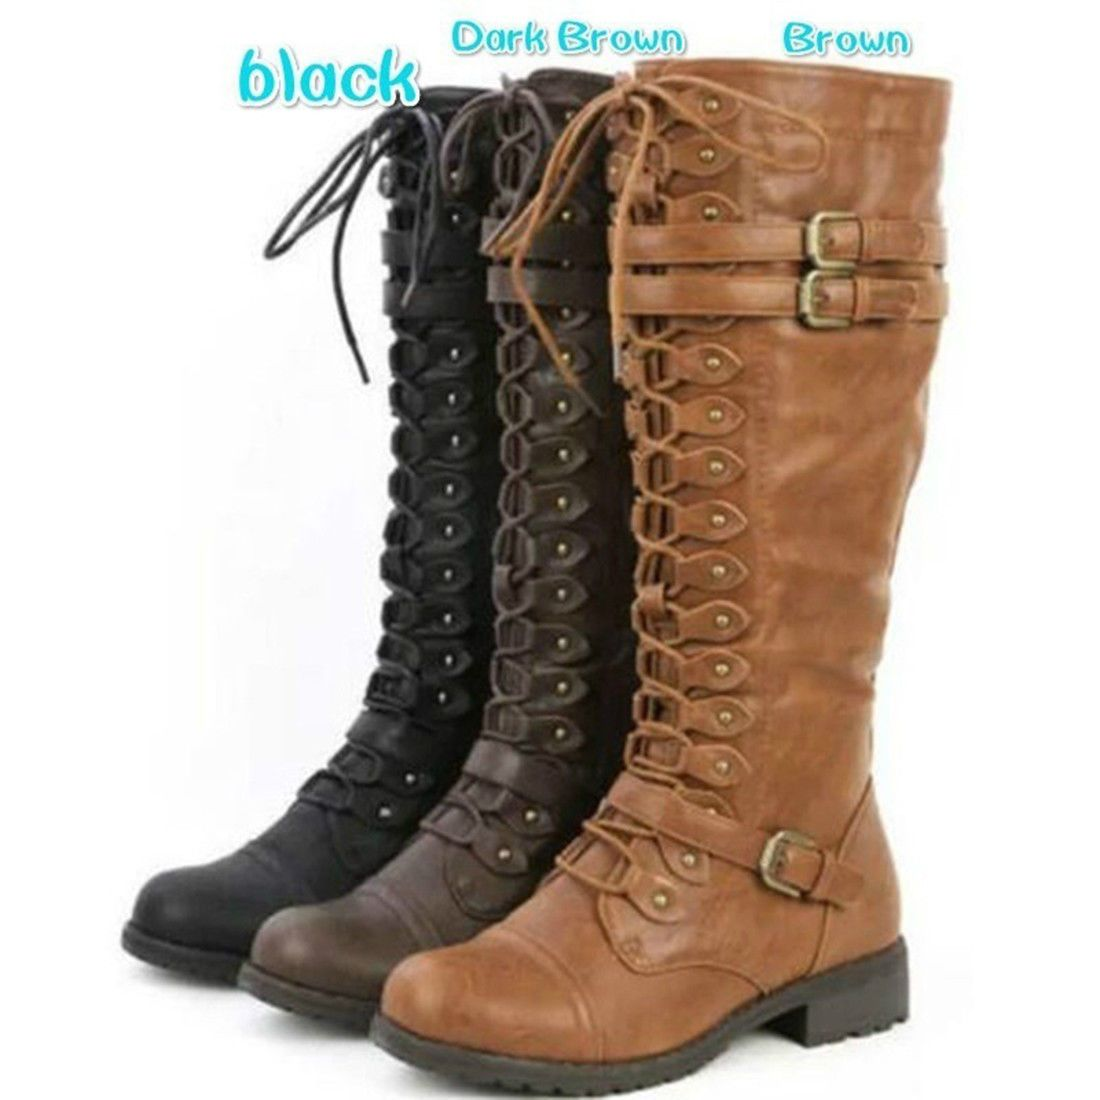 f5875f90c74 3 Colors Womens Knee High Buckle Fashion Military Combat Boots Winter Snow  Boots